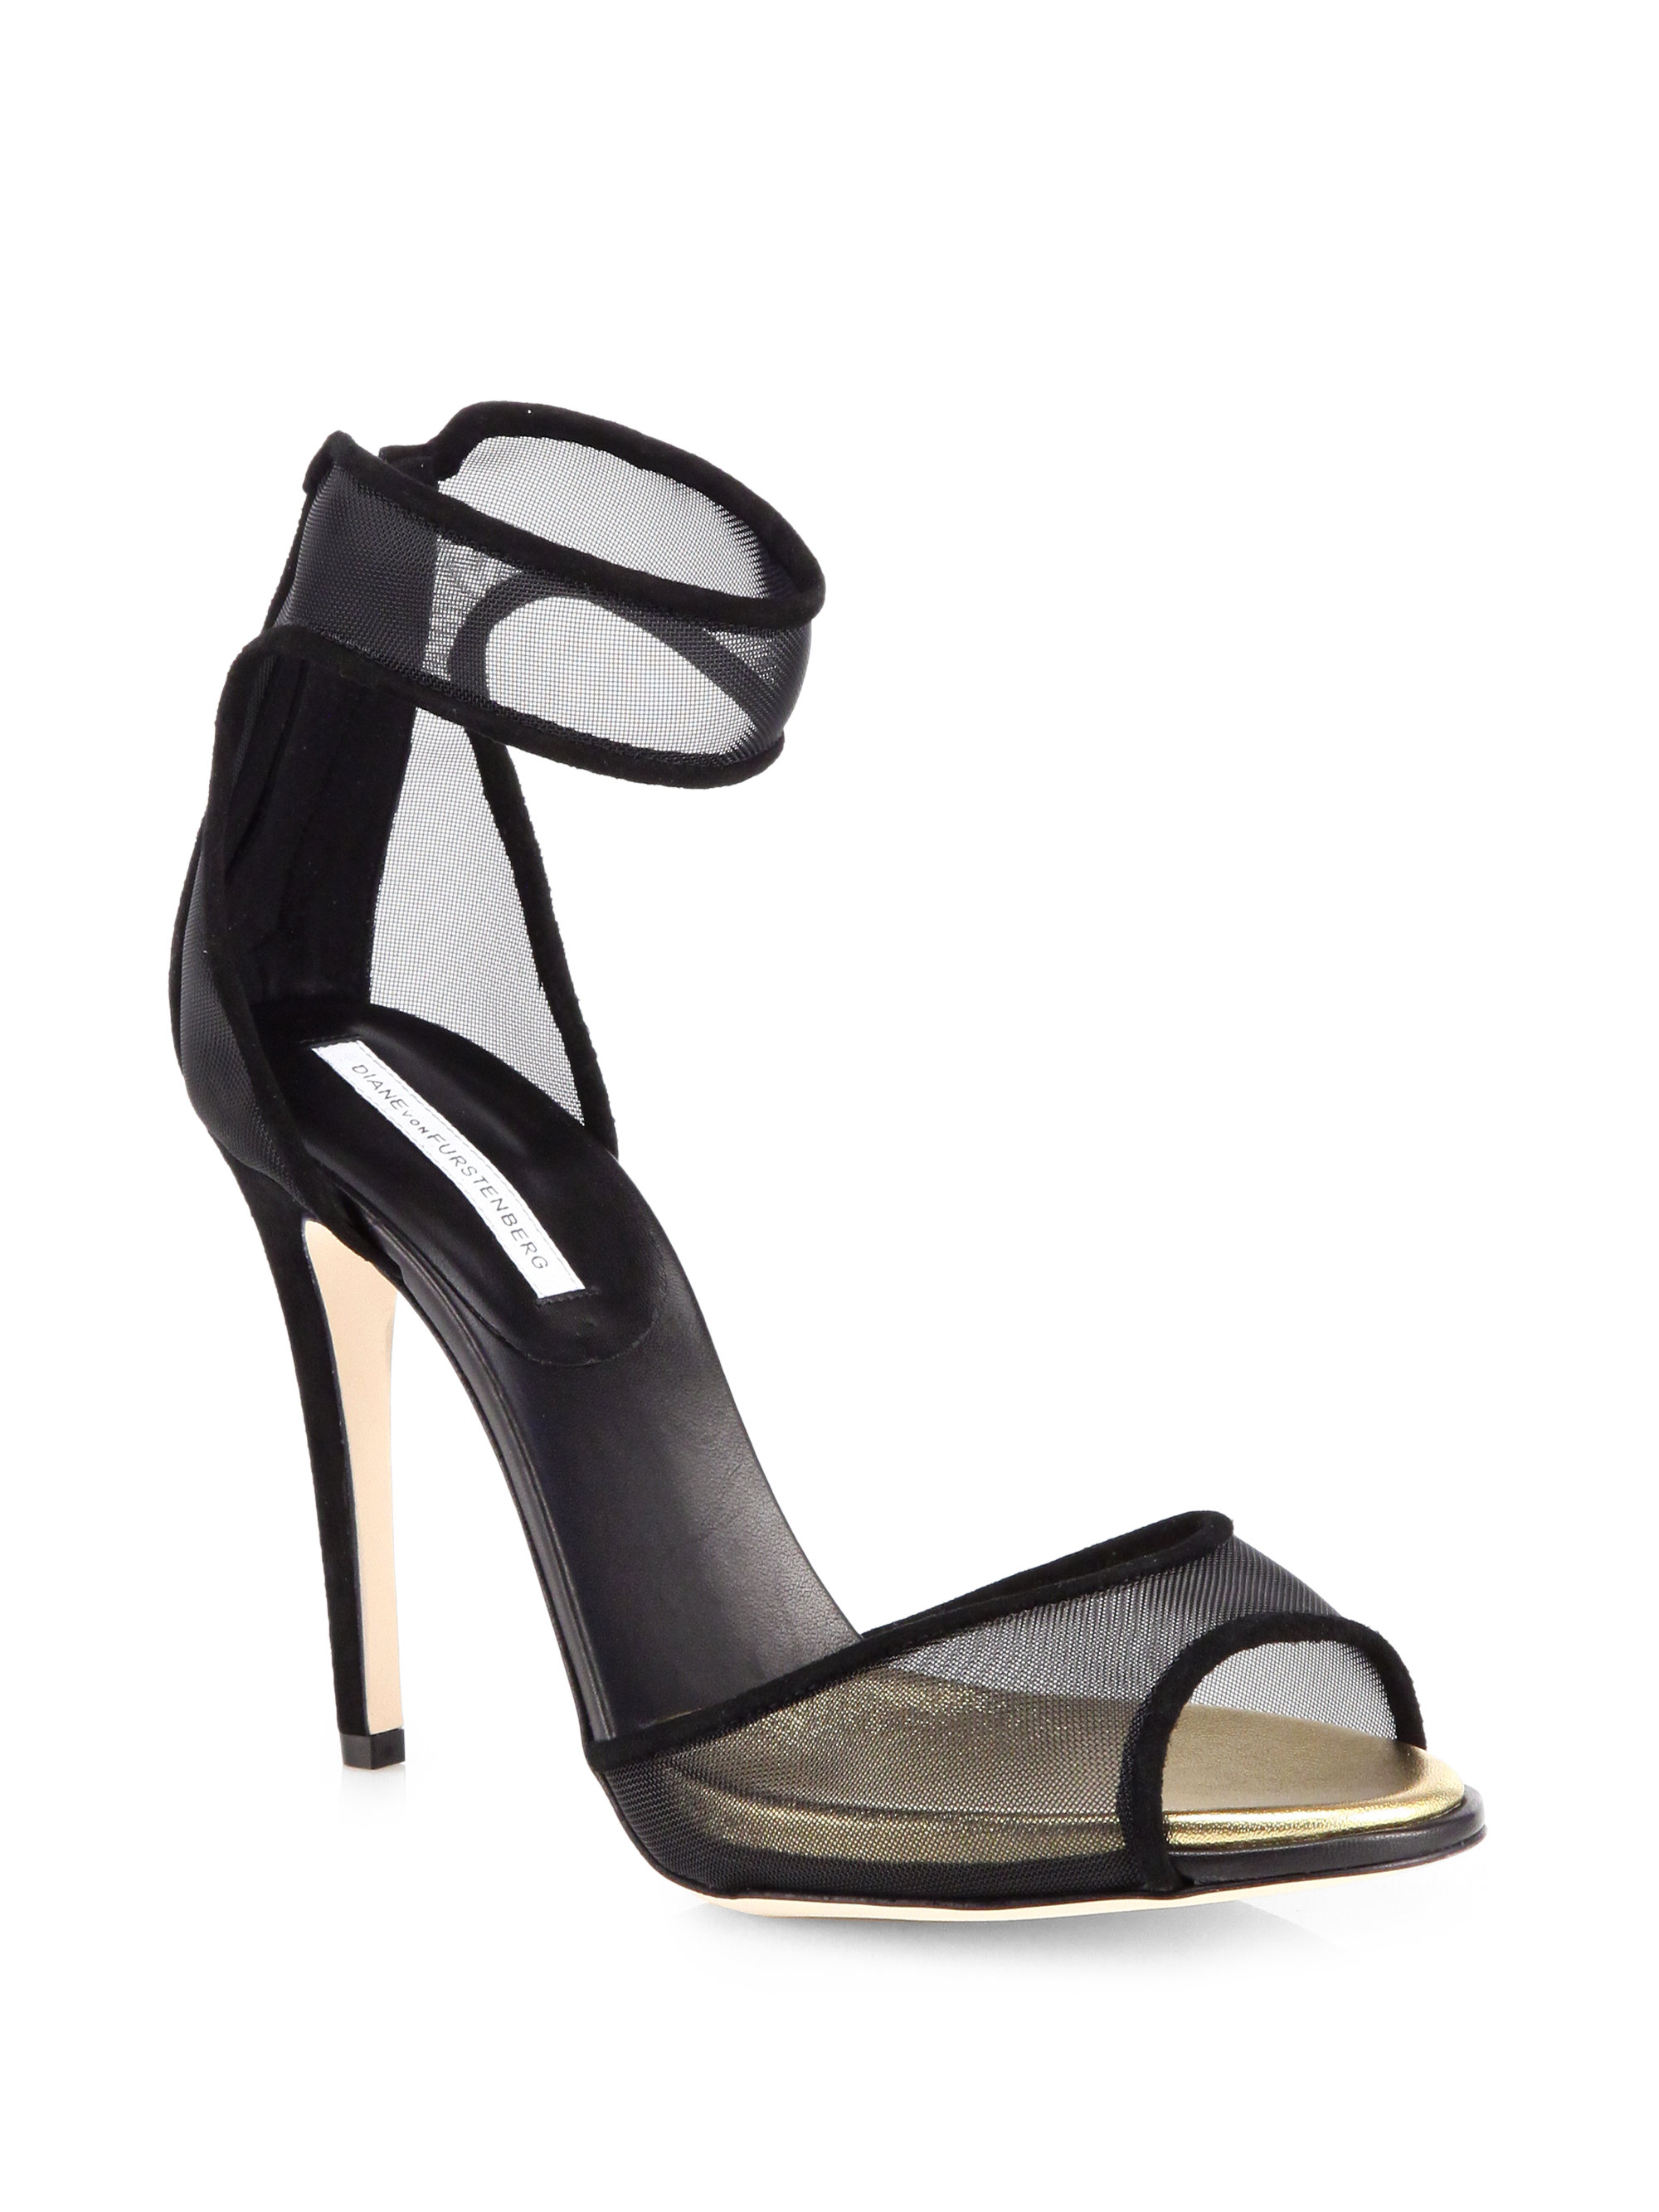 For a bit of semi transparent heaven you cannot go far wrong if it involves these feminine and oh so sexy little sandals from dvf these are some seriously